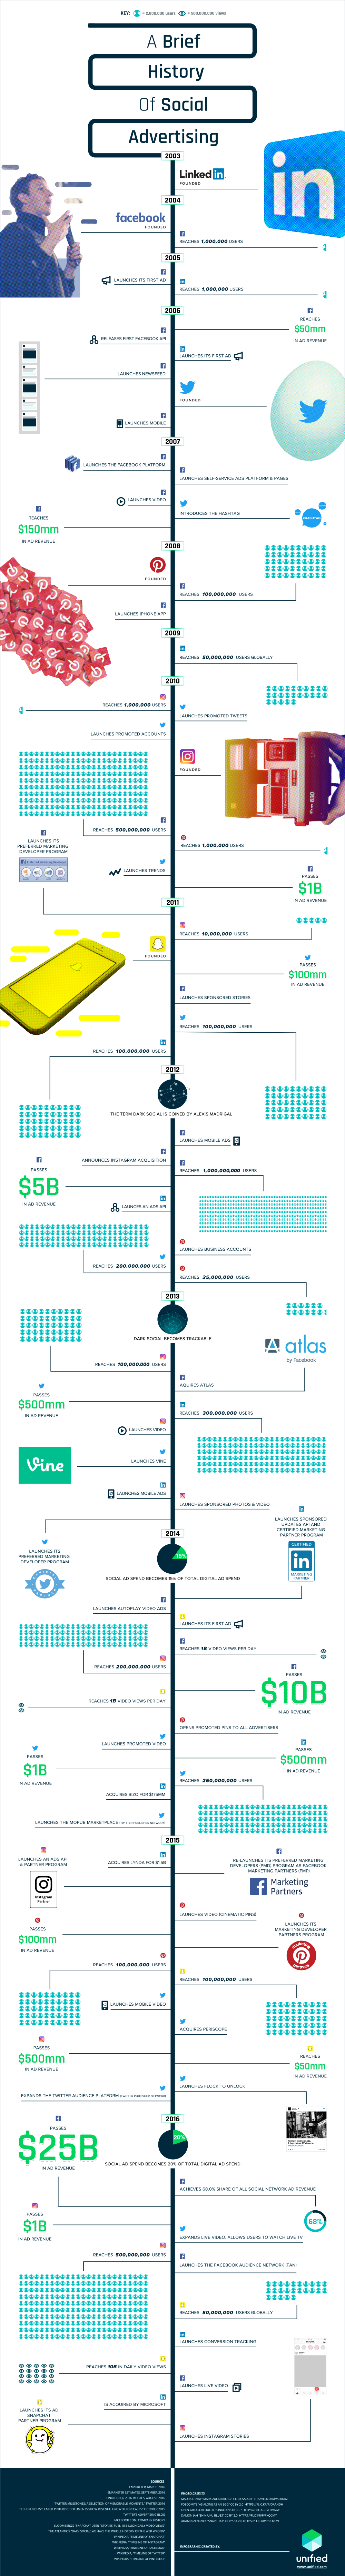 Let's take a look at a brief history of Social Advertising in this Infographic!